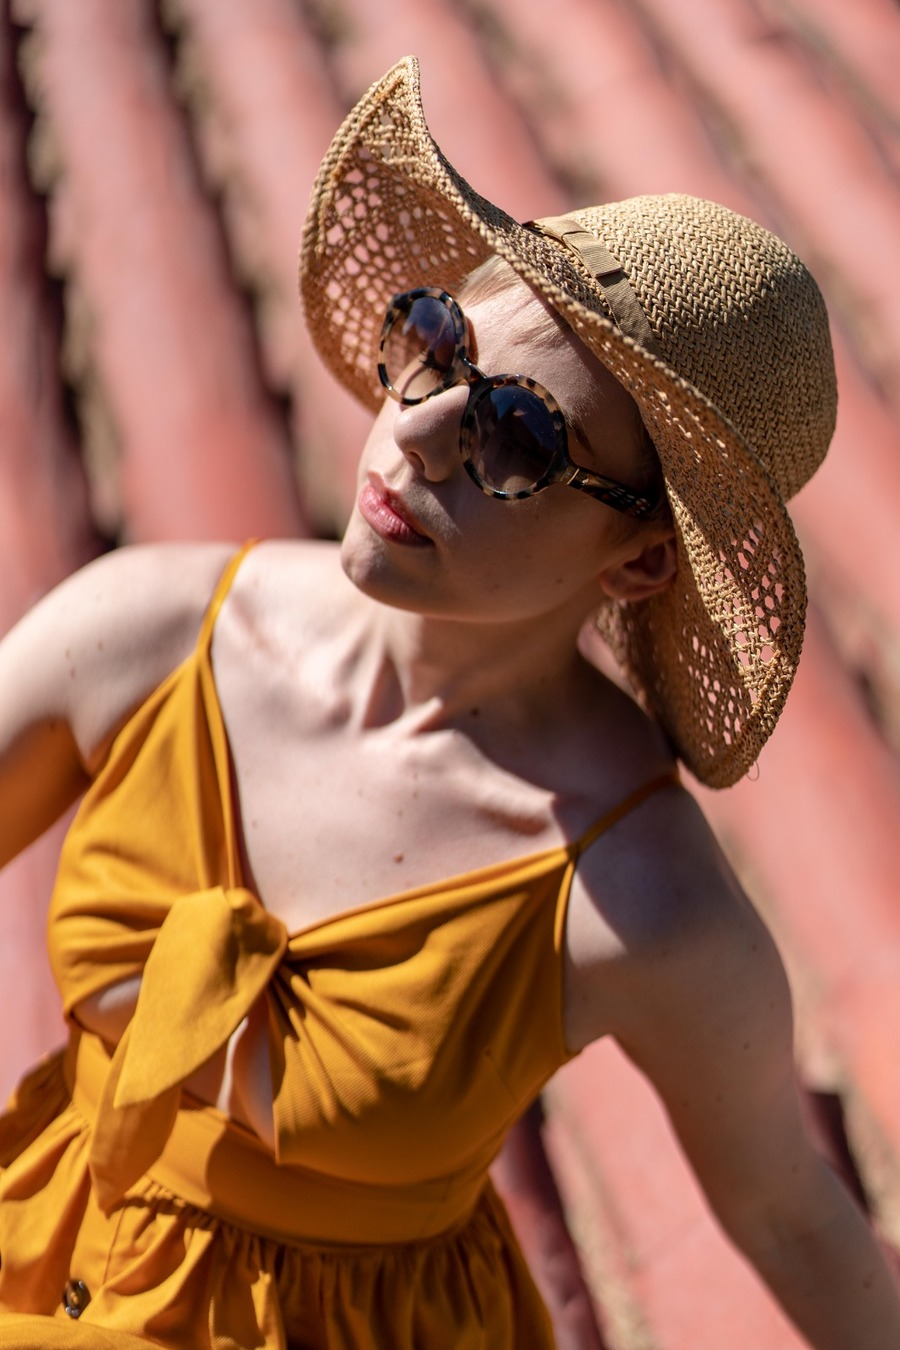 Barcelona / Photography by NikT, Model Evee Snow, Post processing by NikT, Assisted by Monika Lara Smith / Uploaded 19th May 2019 @ 10:29 PM